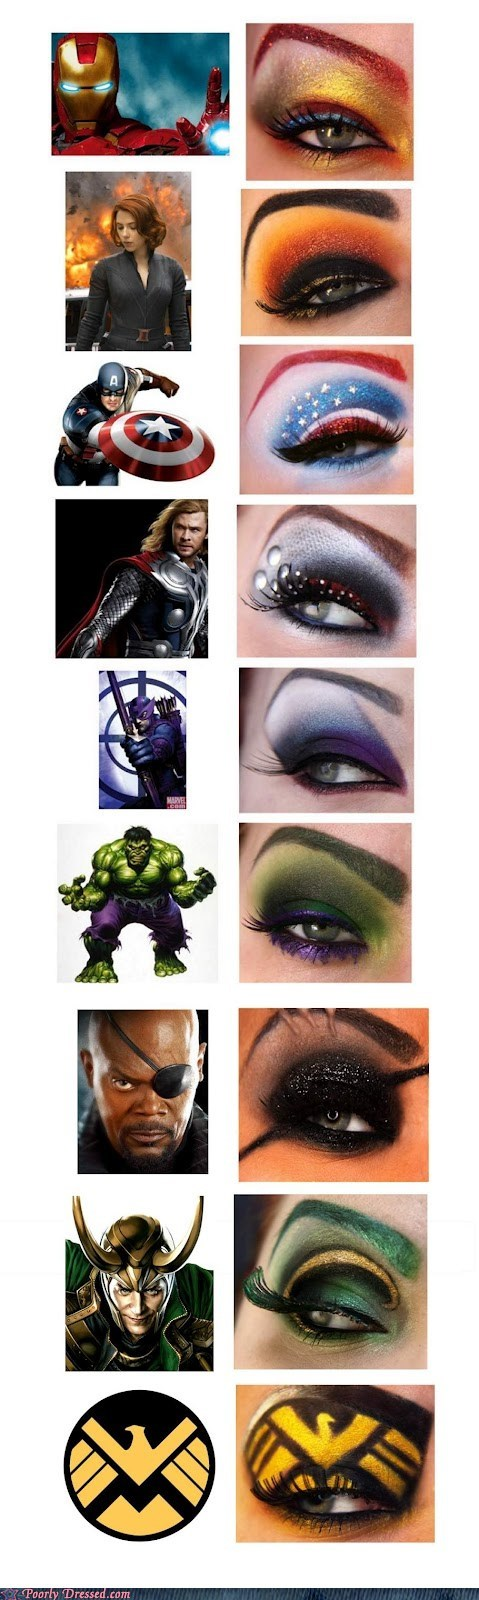 avengers,g rated,Hall of Fame,makeup,nerdgasm,Poorly Dresssed,super heroes